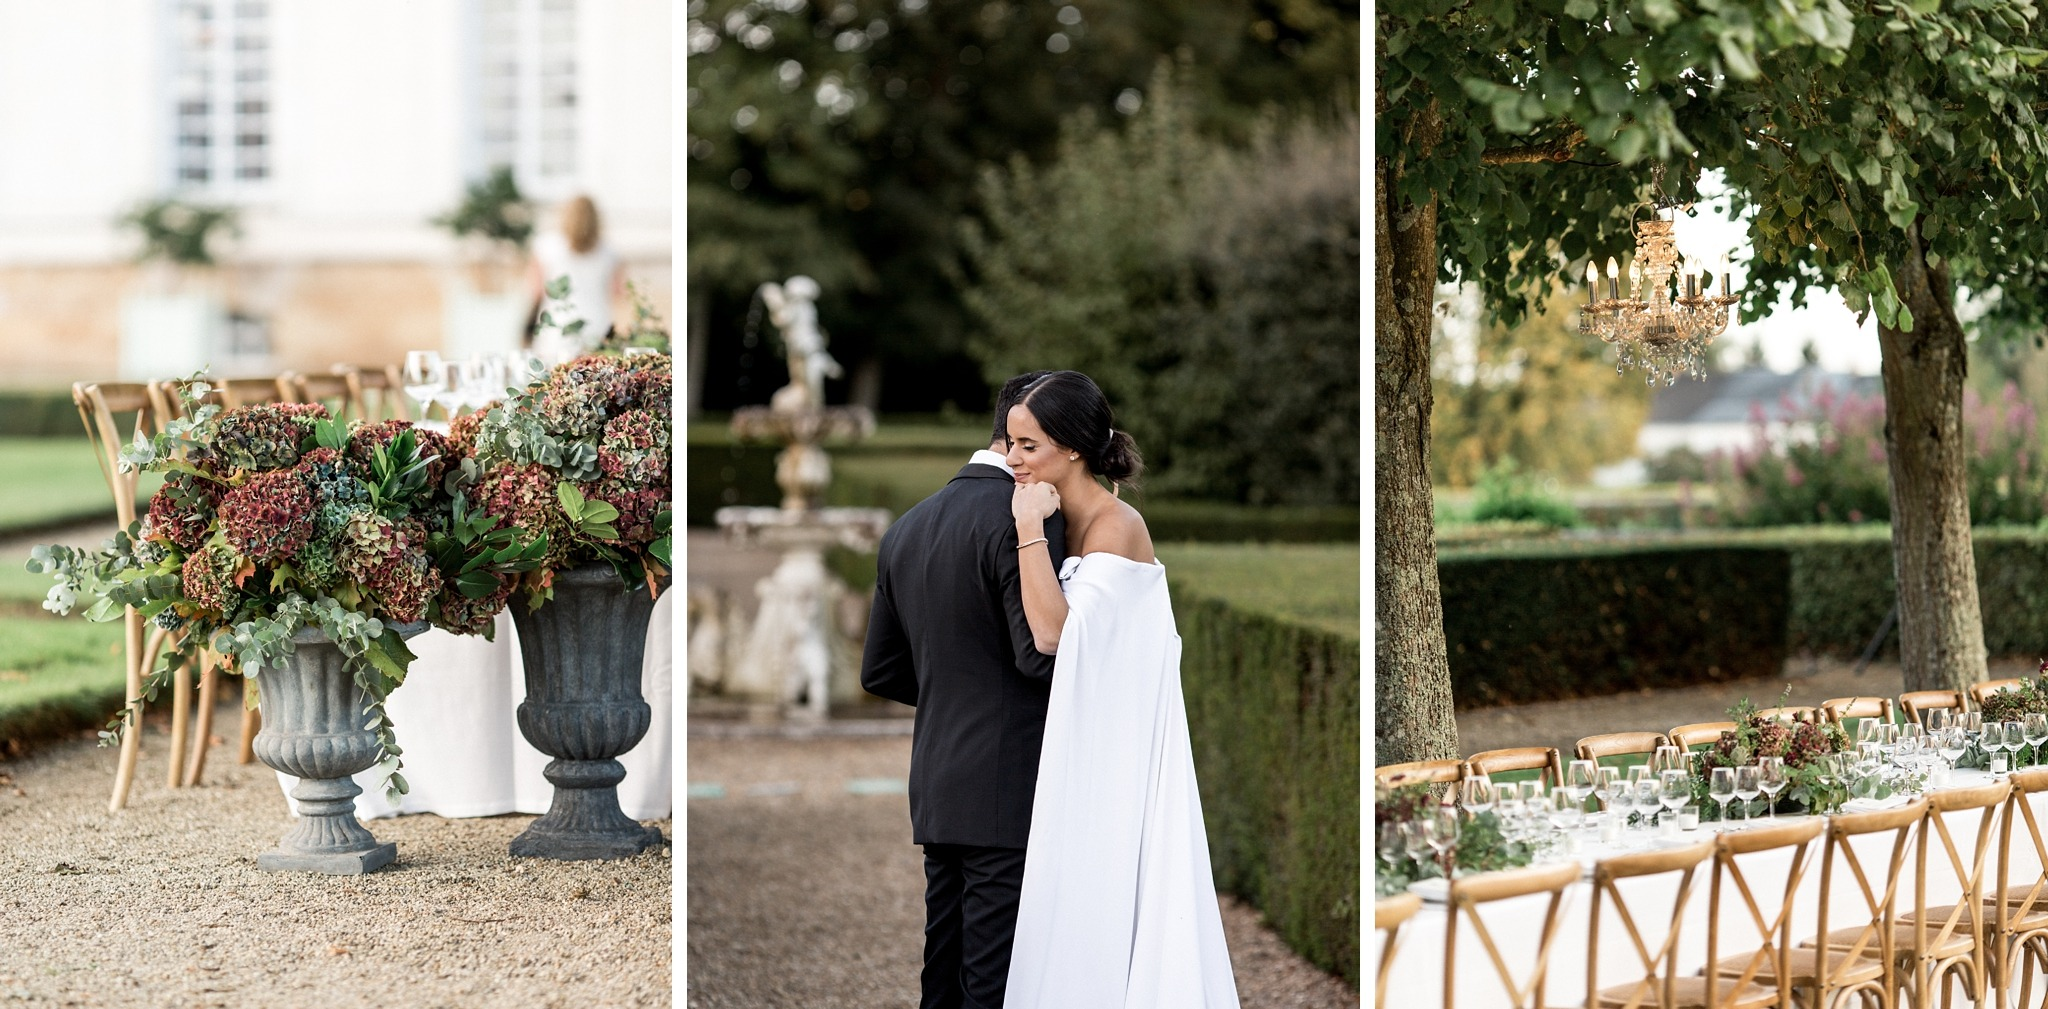 chateau-wedding-france-chanel-eric-as-seen-on-vogue-with-sarah-falugo-photographer_0190